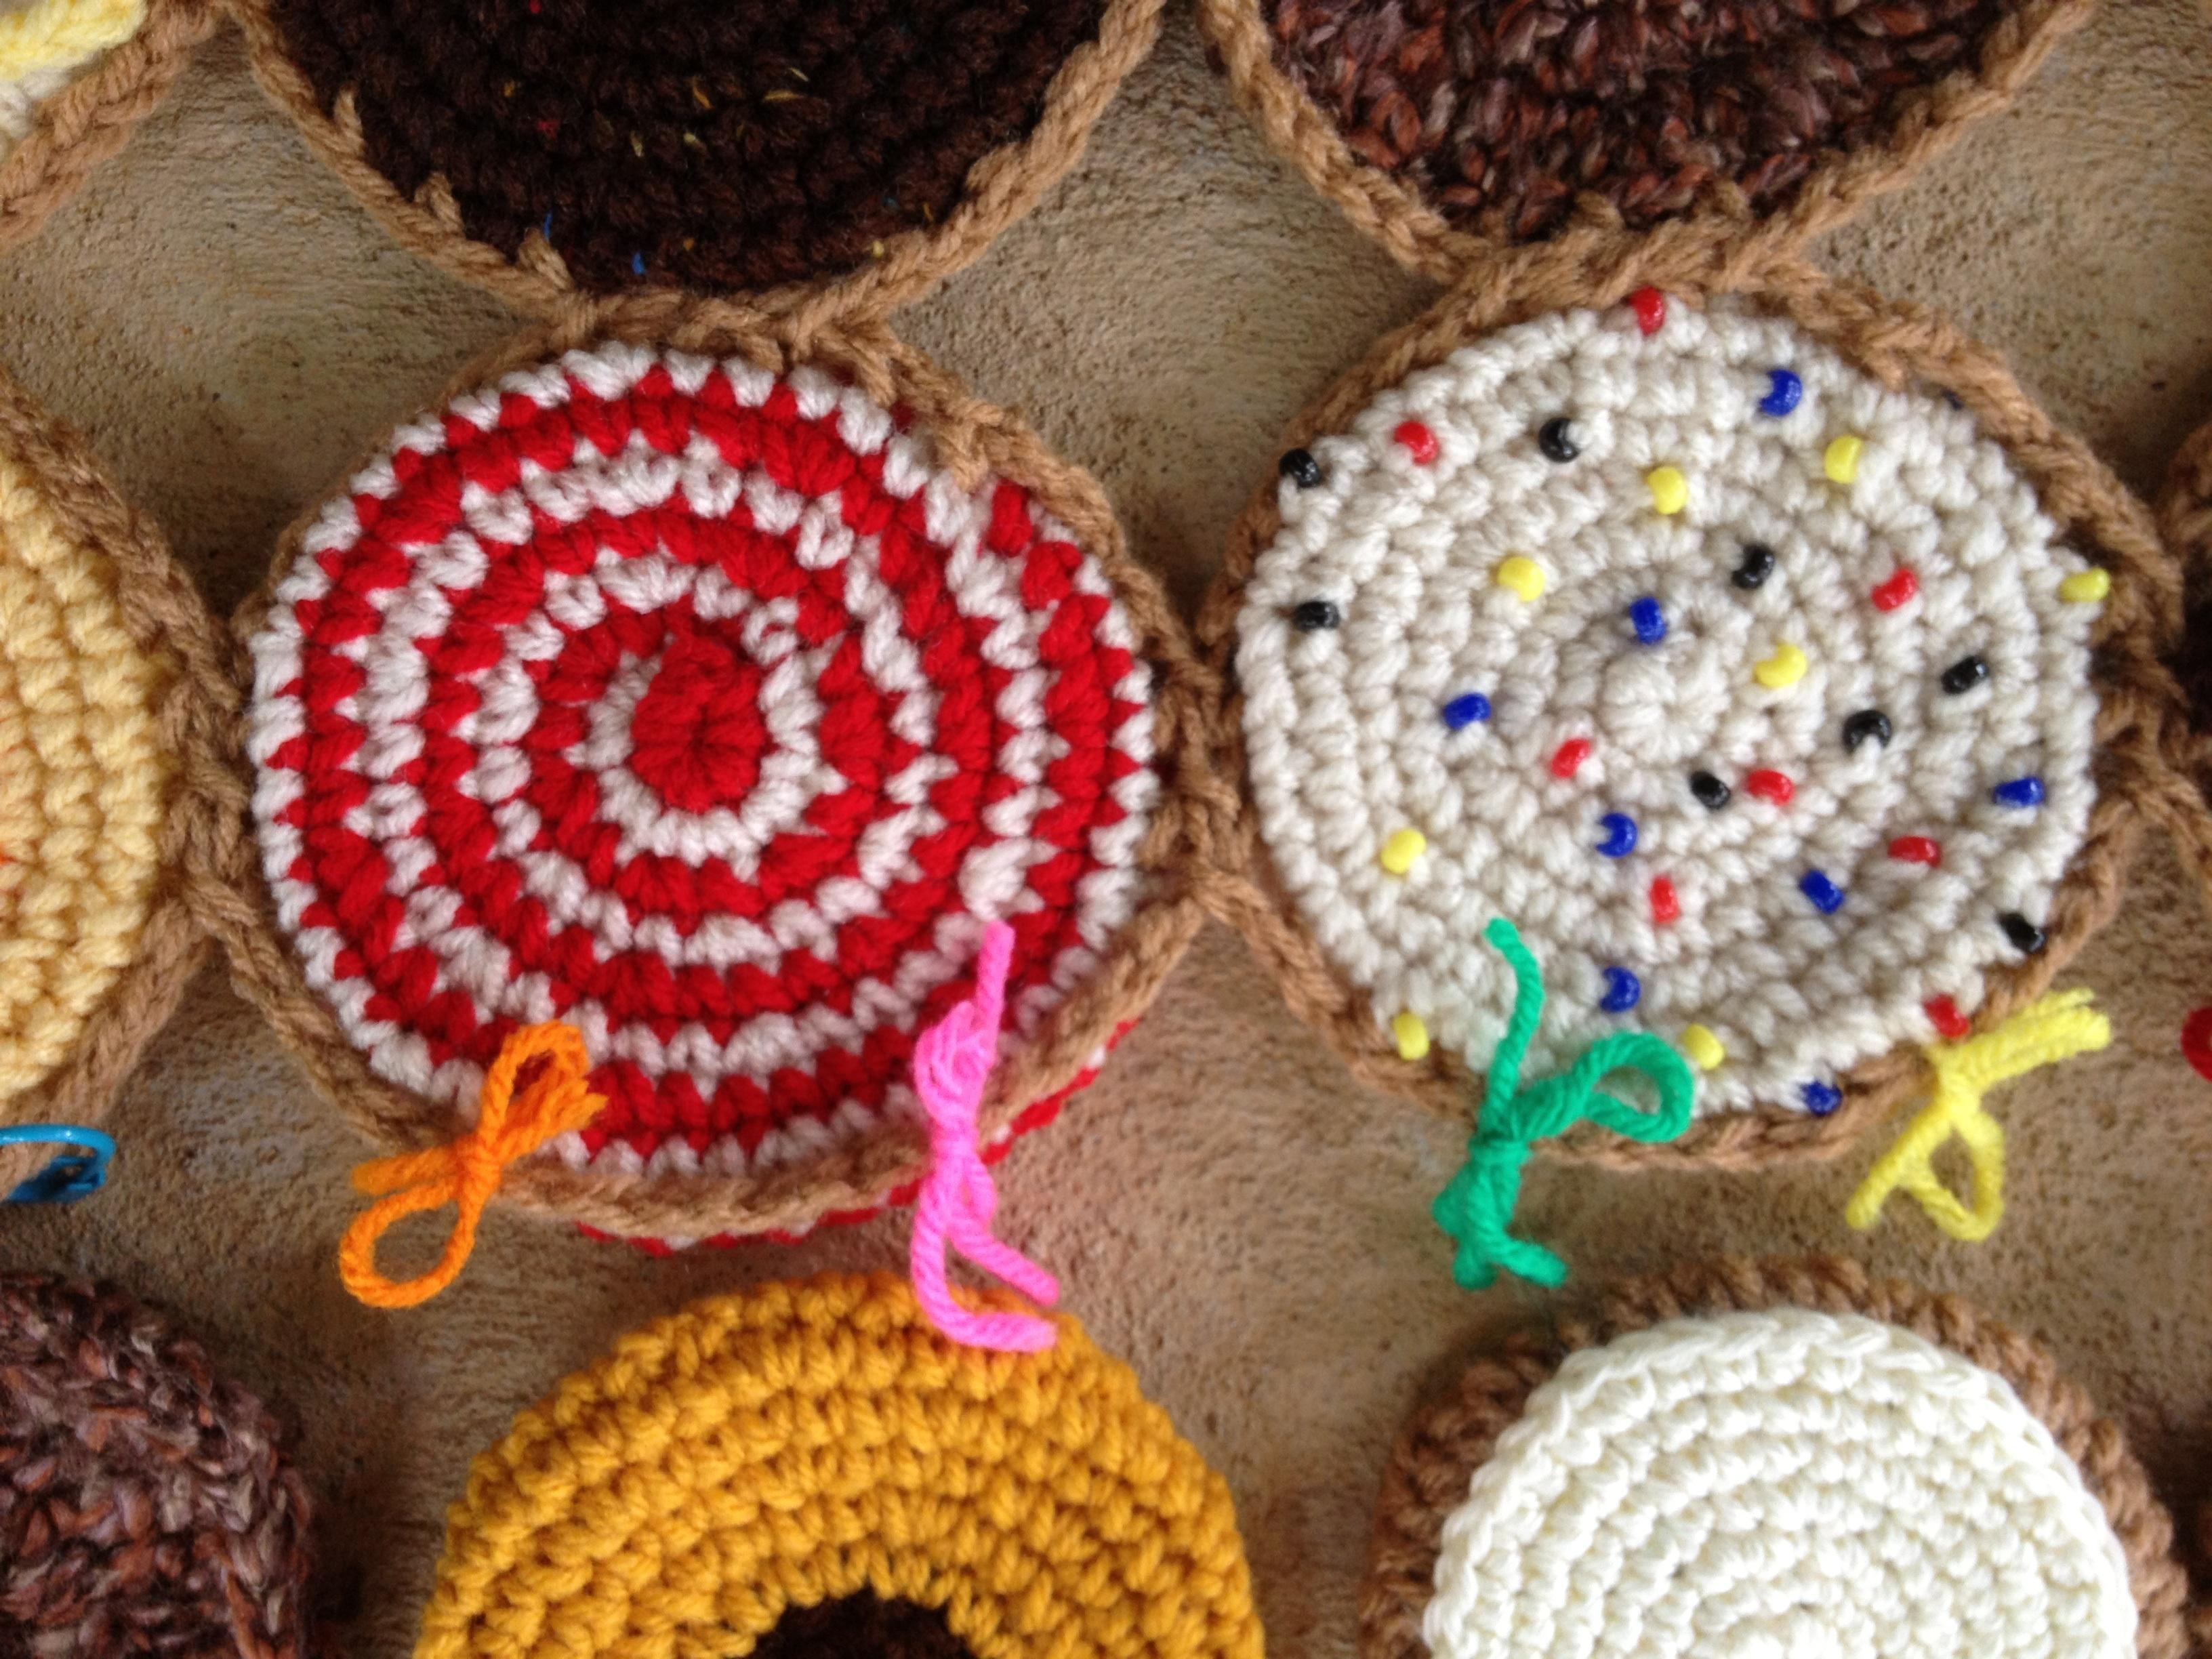 Crochet Stitch Markers How To Use : Using yarn scraps as stitch markers - Crochetbug